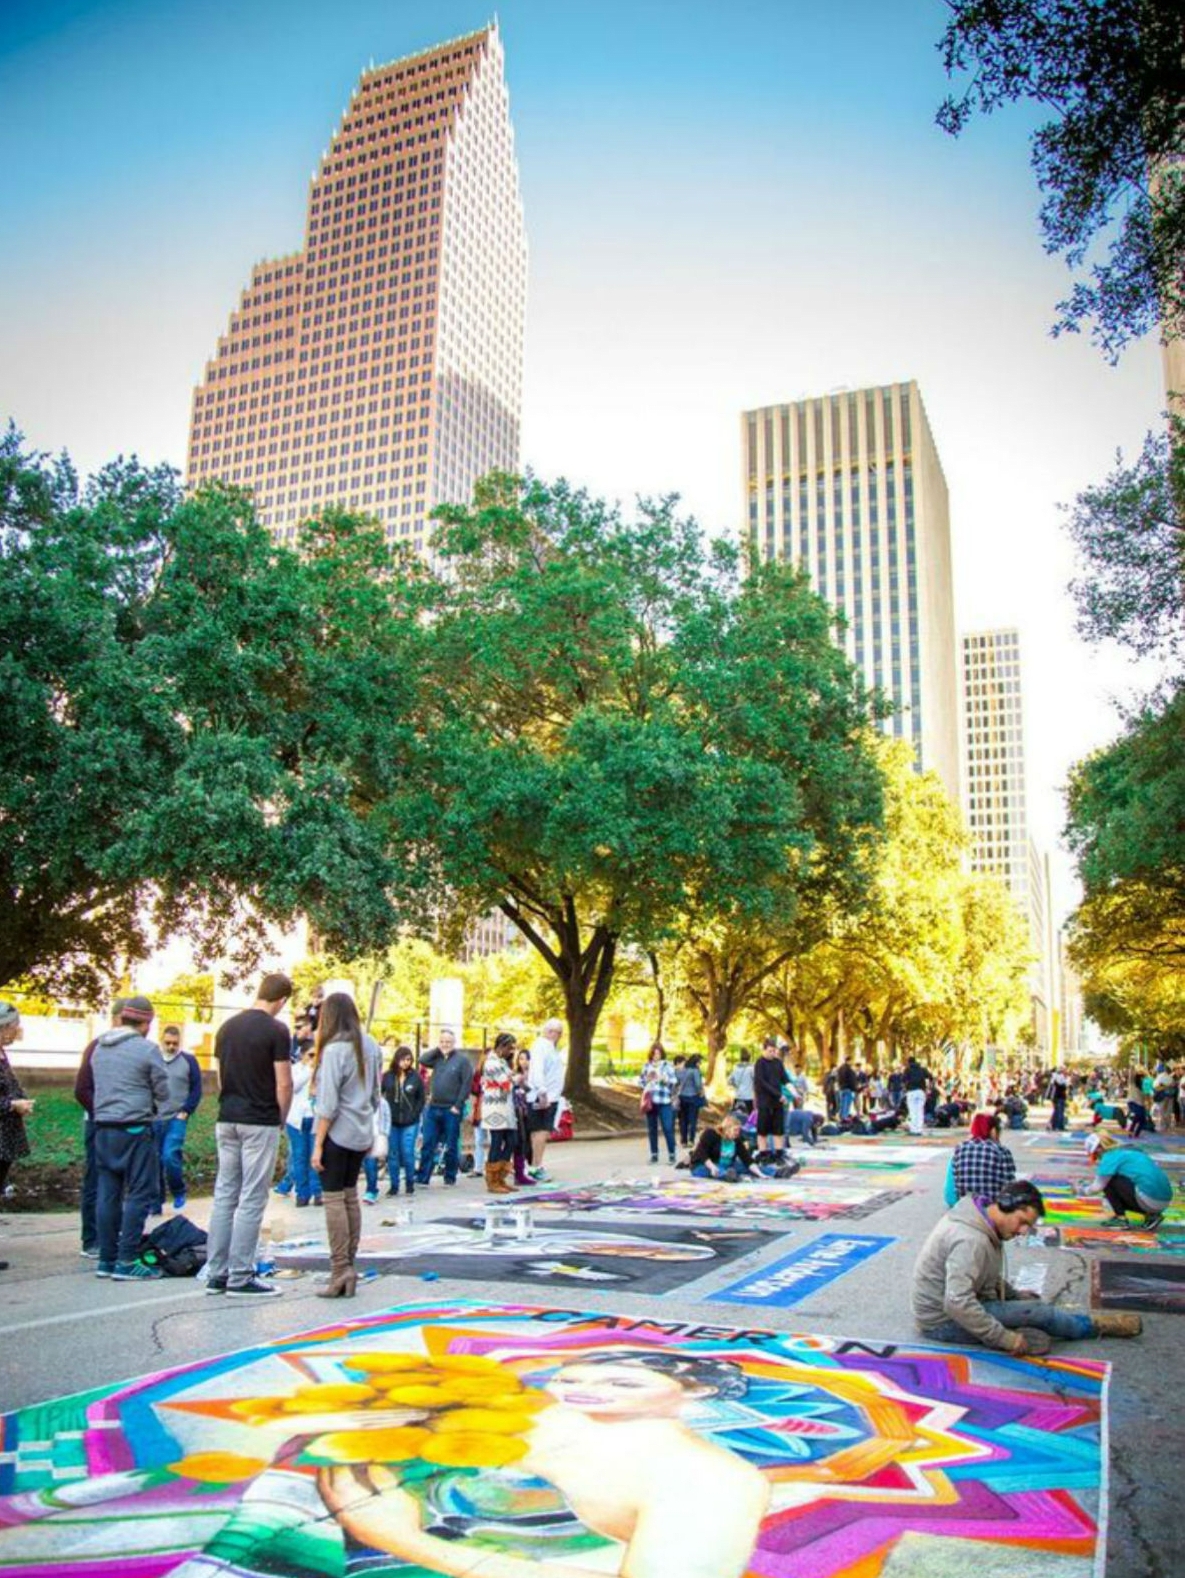 The Center for Hearing and Speech presents Houston Via Colori® Street Painting Festival